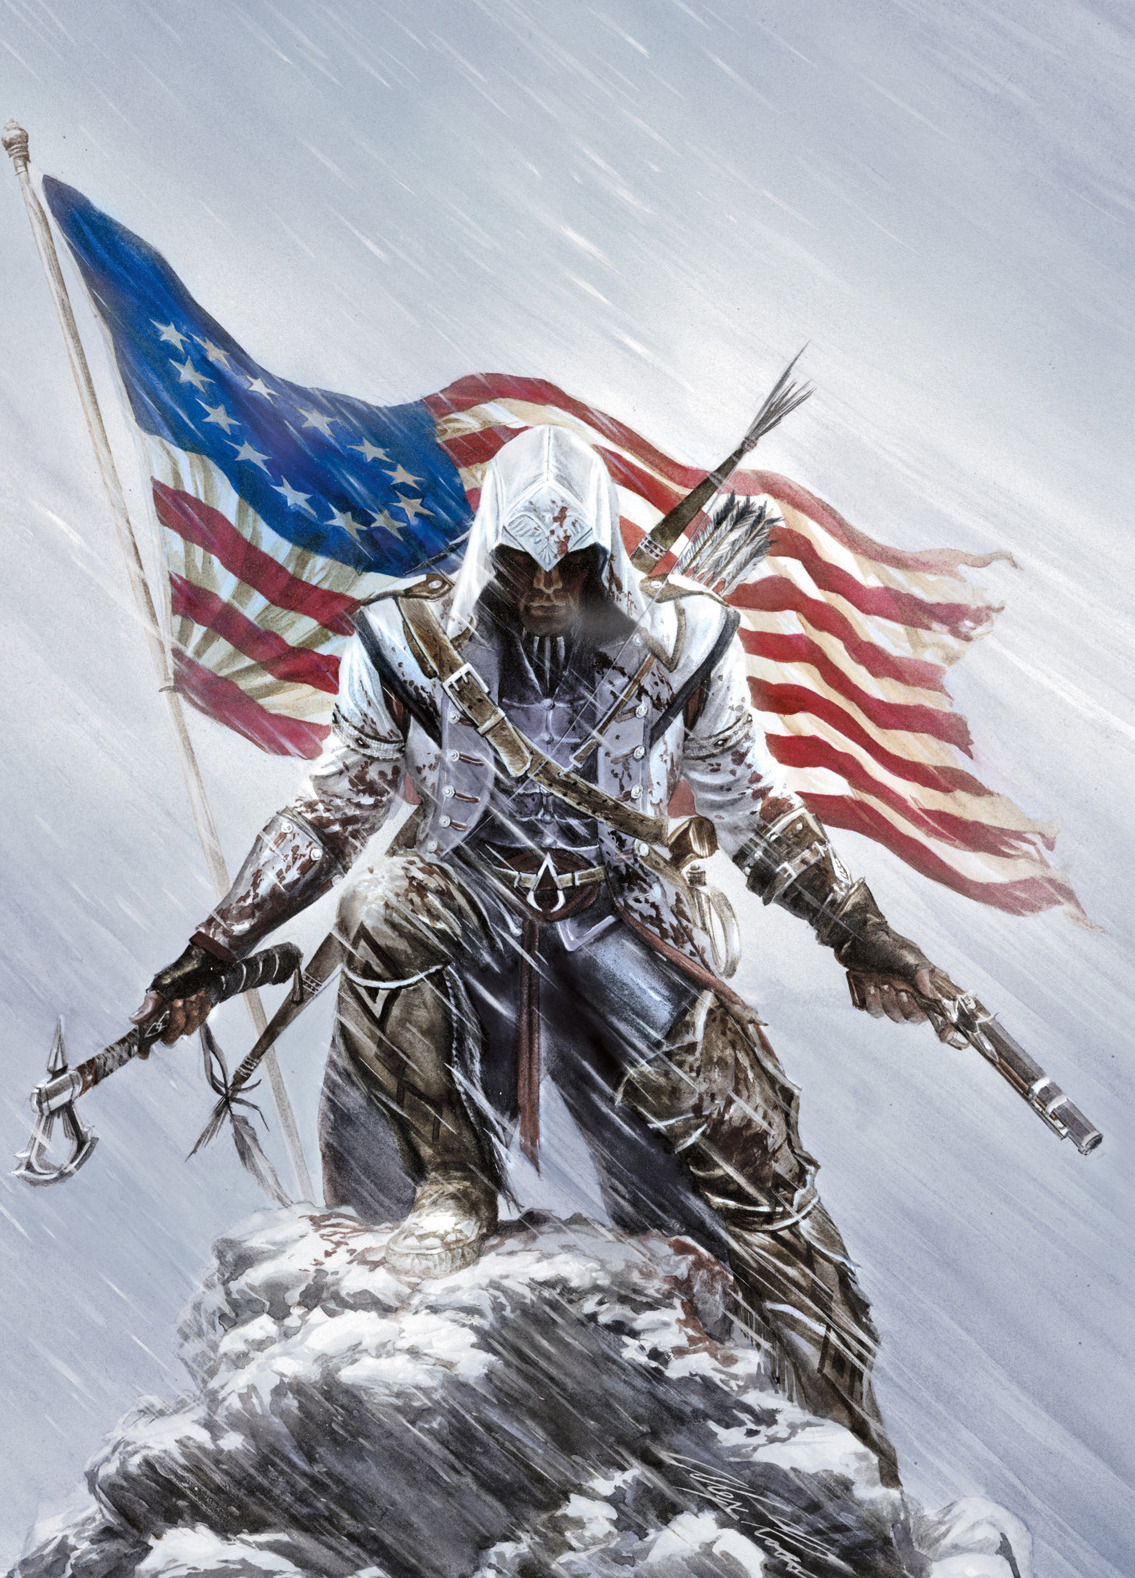 gamefreaksnz:  Assassin's Creed III: more E3 images released  Ubisoft have released a few more screenshots for Assassin's Creed III following up on their impressive showing at E3 earlier this month.